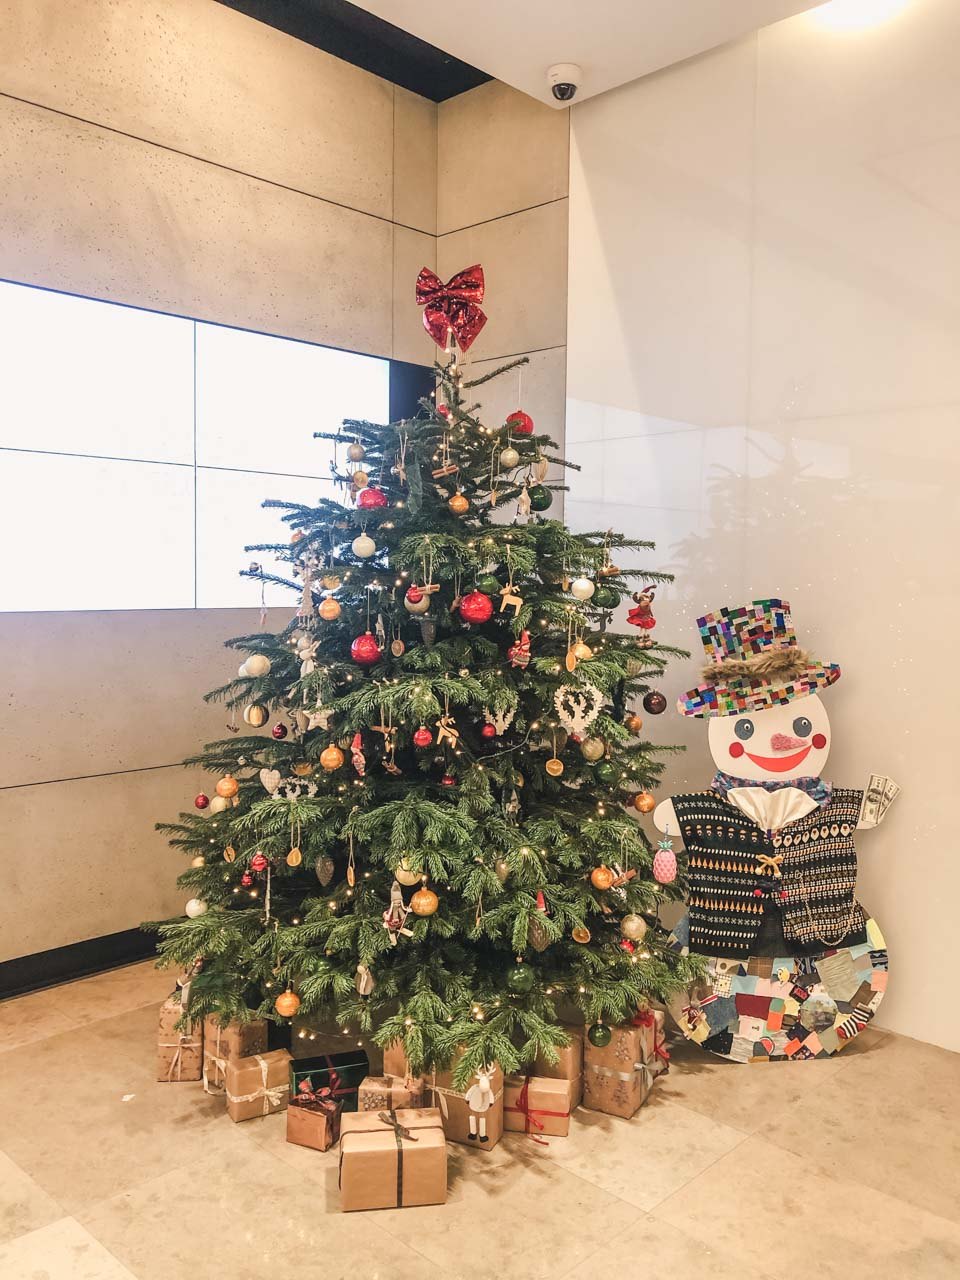 A decorated Christmas tree with presents underneath and a colourful snowman standing beside it